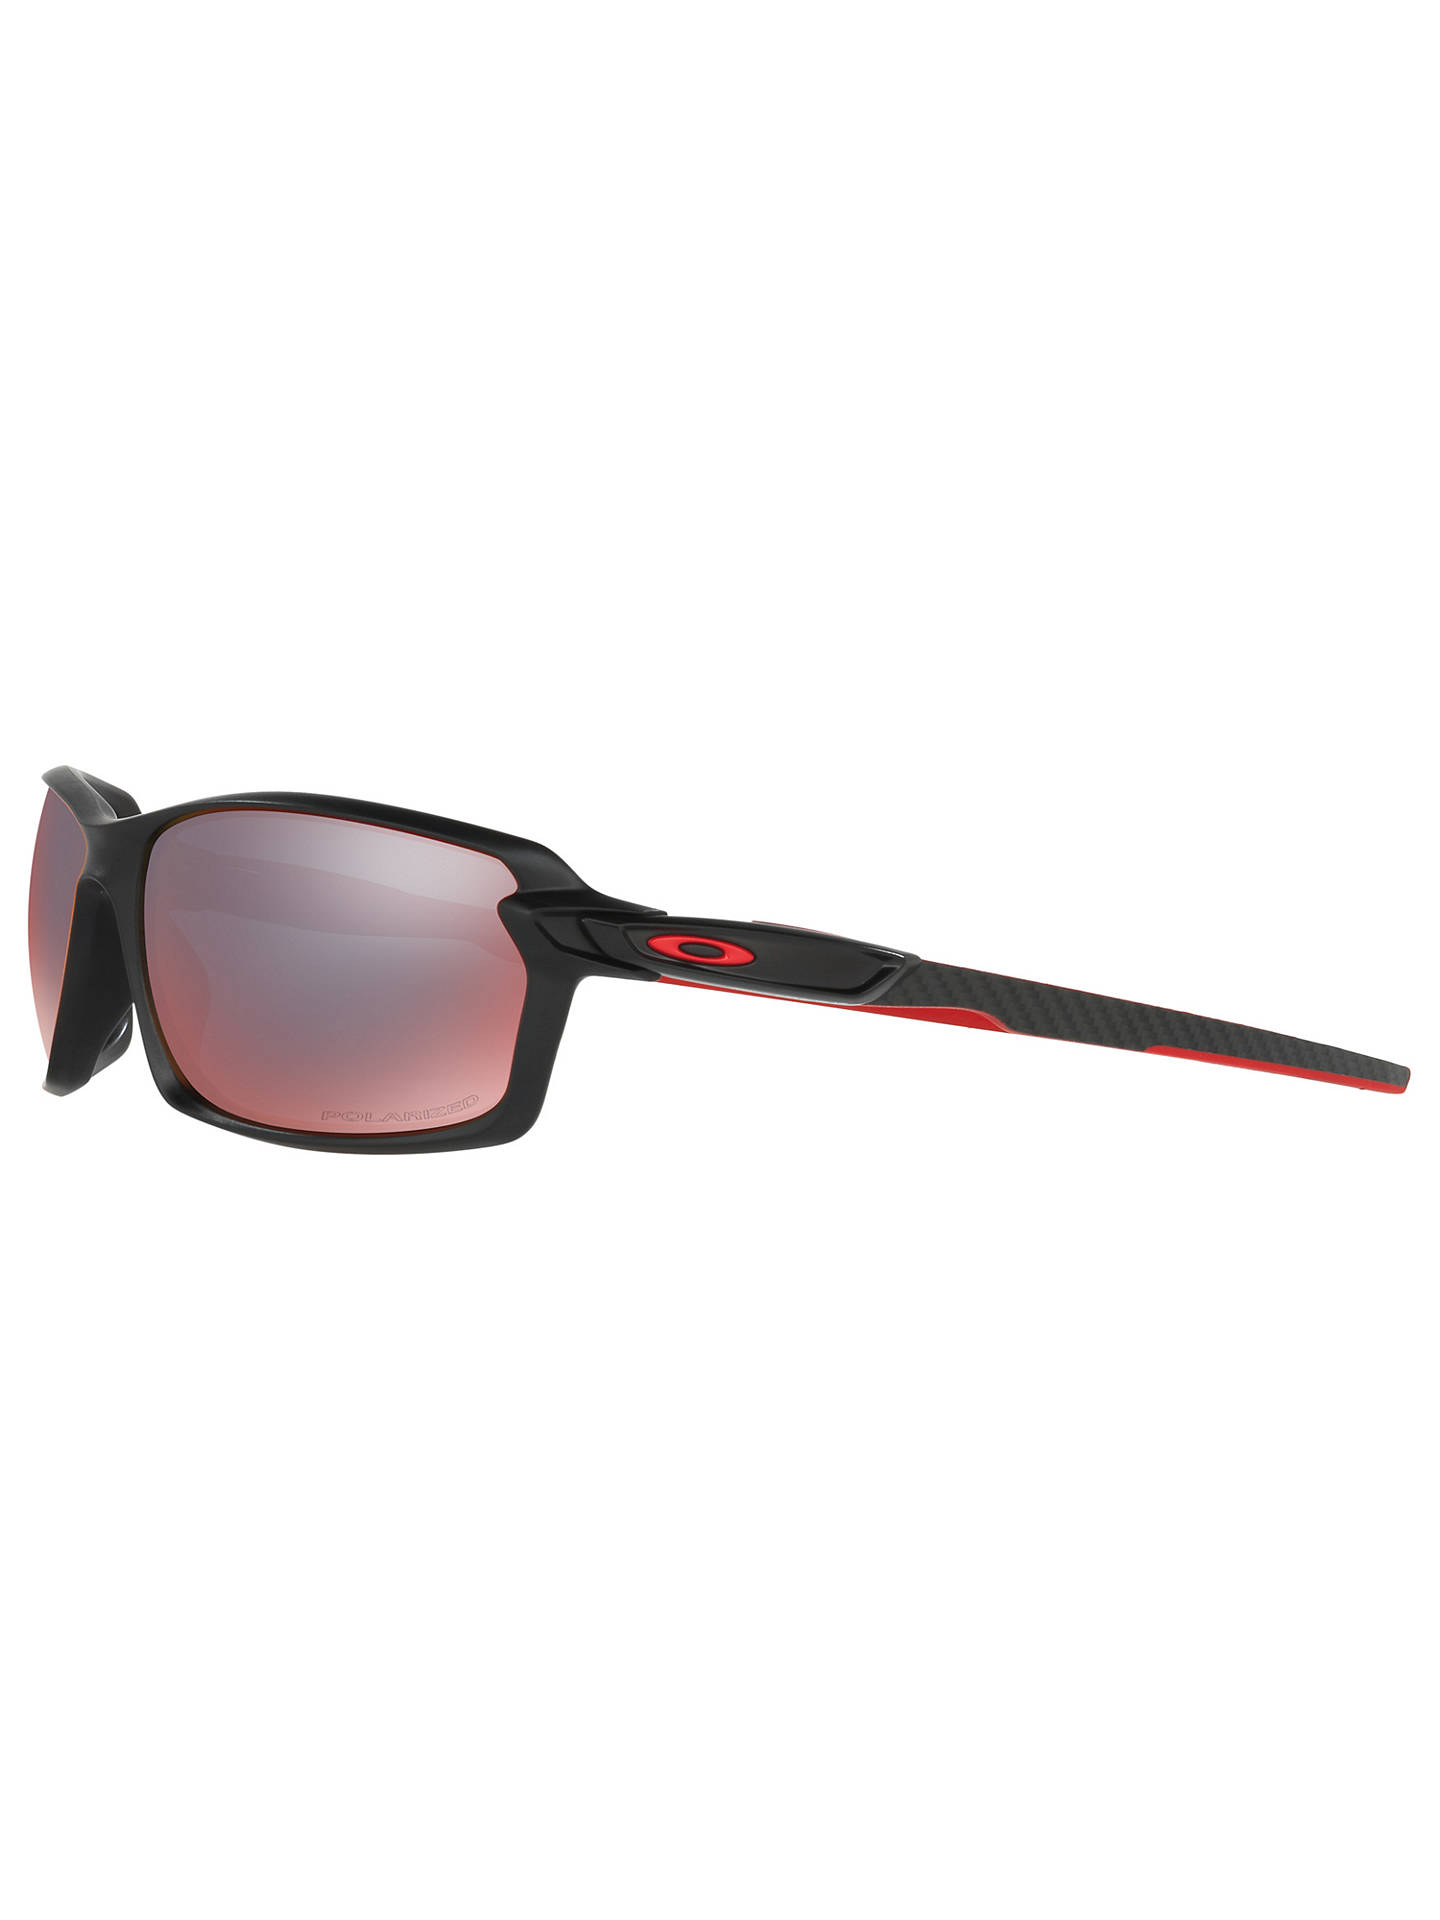 995c93baeb Oakley OO9302 Carbon Shift Polarised Rectangular Sunglasses at John ...